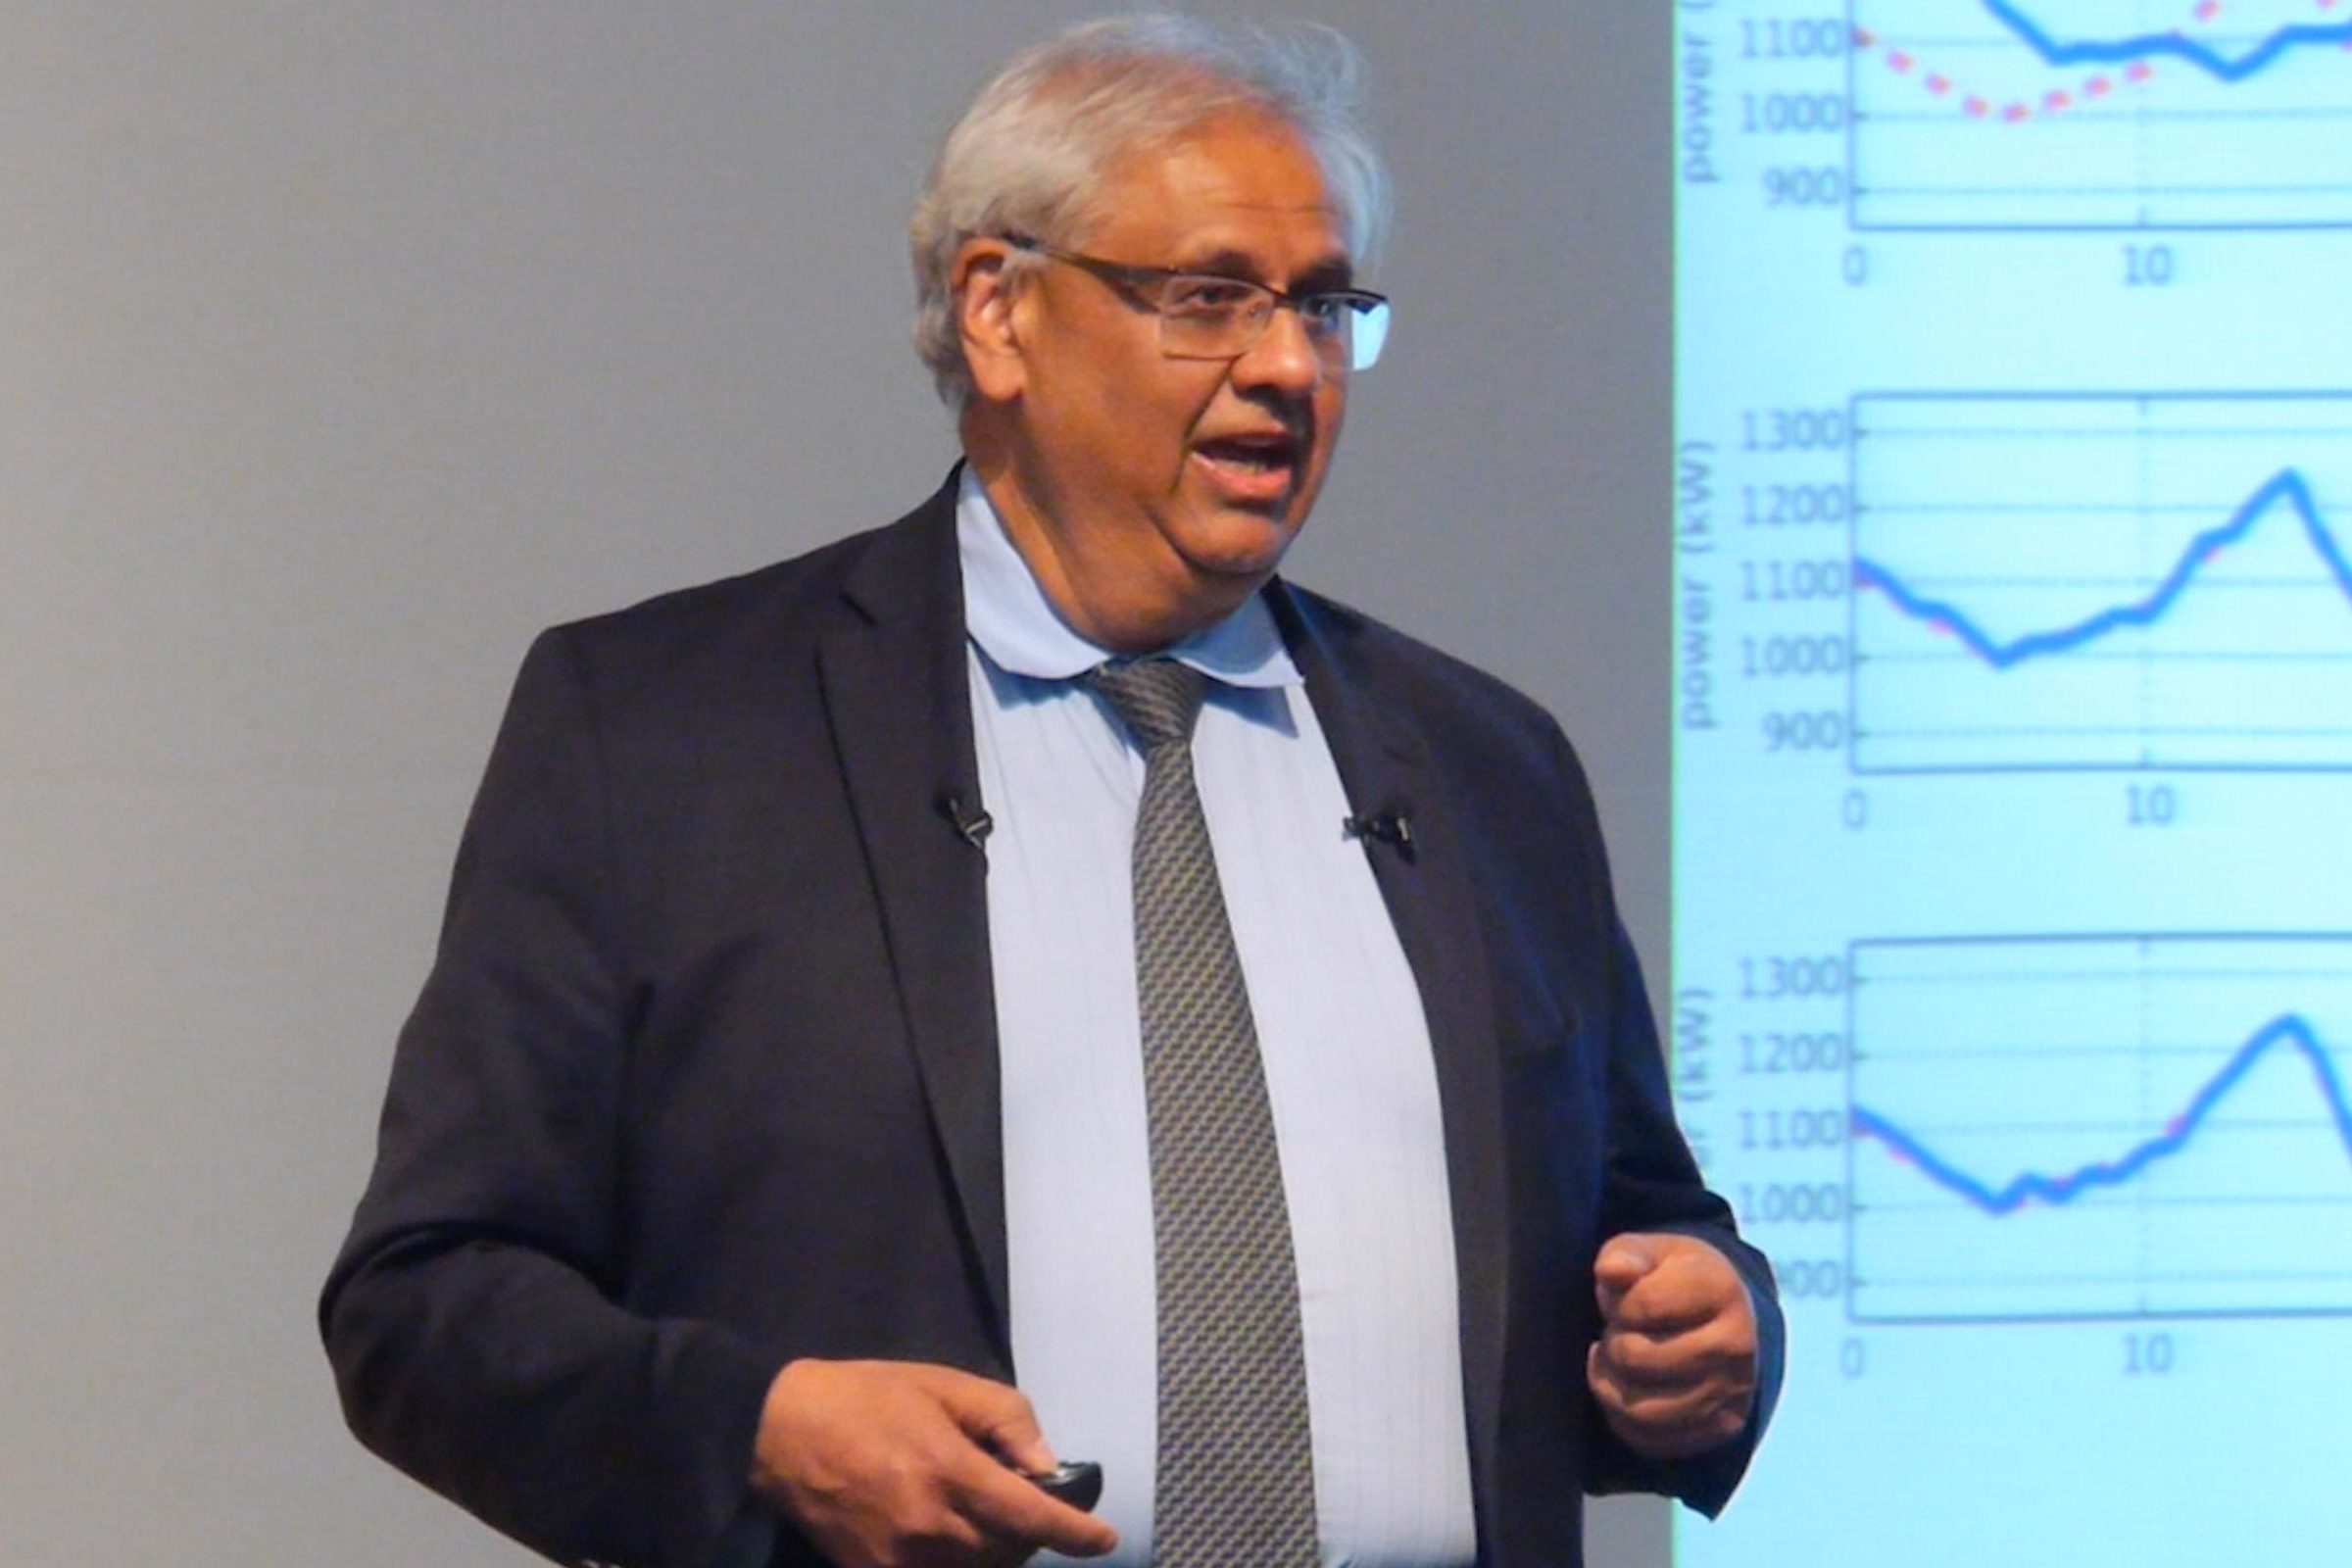 Dr. S. Shankar Sastry speaks before an audience.